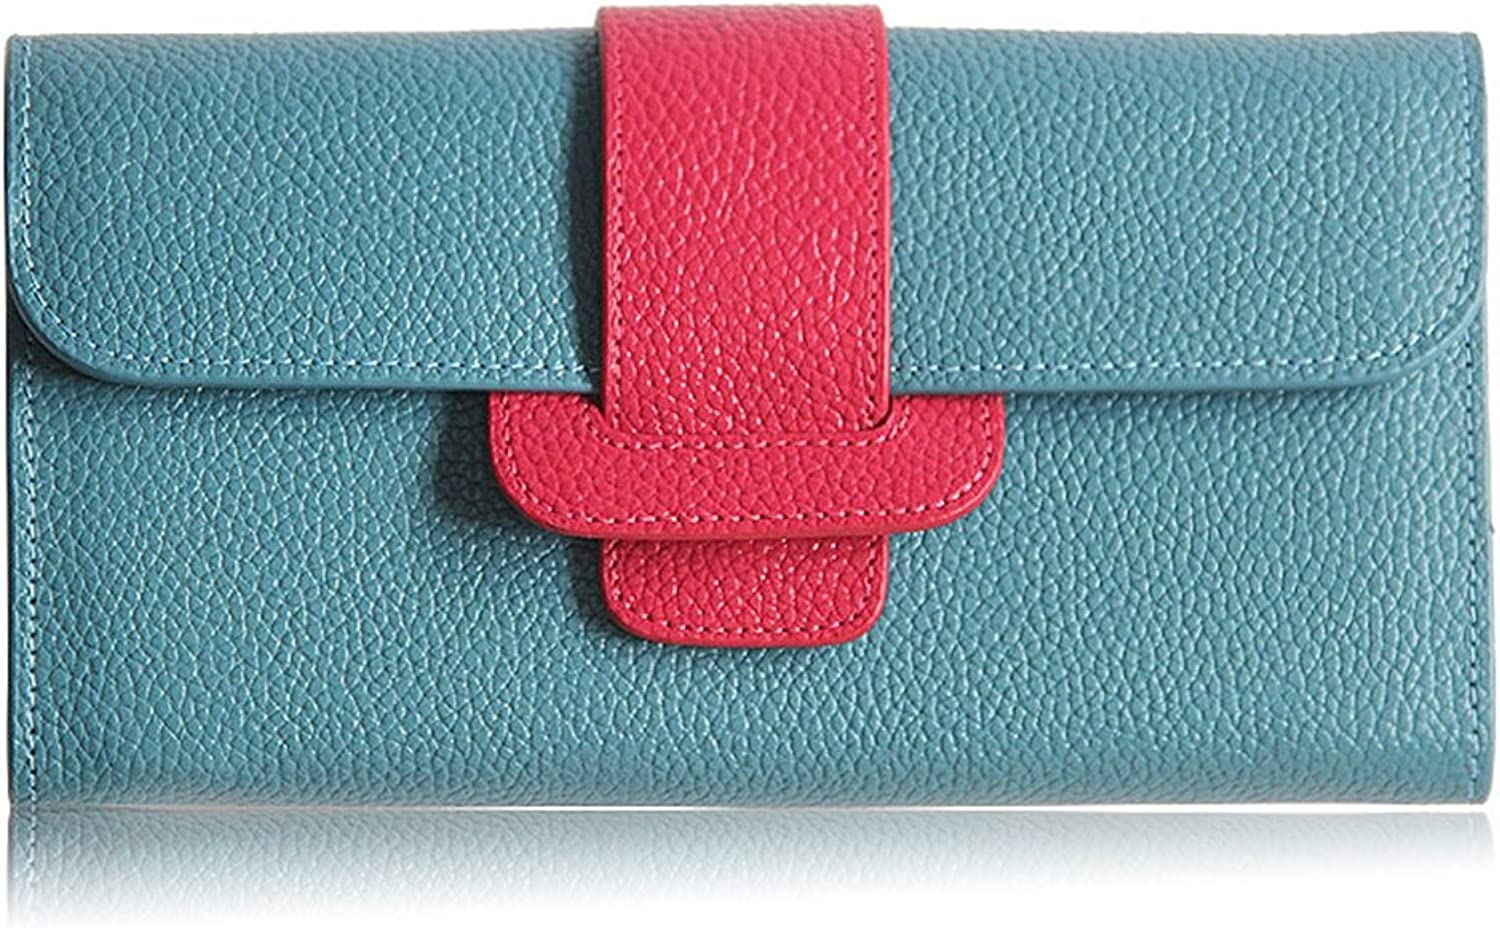 Ladies Wallet Leather, Women Wallet, Slim Long Wallet, Waxed Leather, Vintage Design, Wallet,bluee with pink(20.5  3  11.5cm)